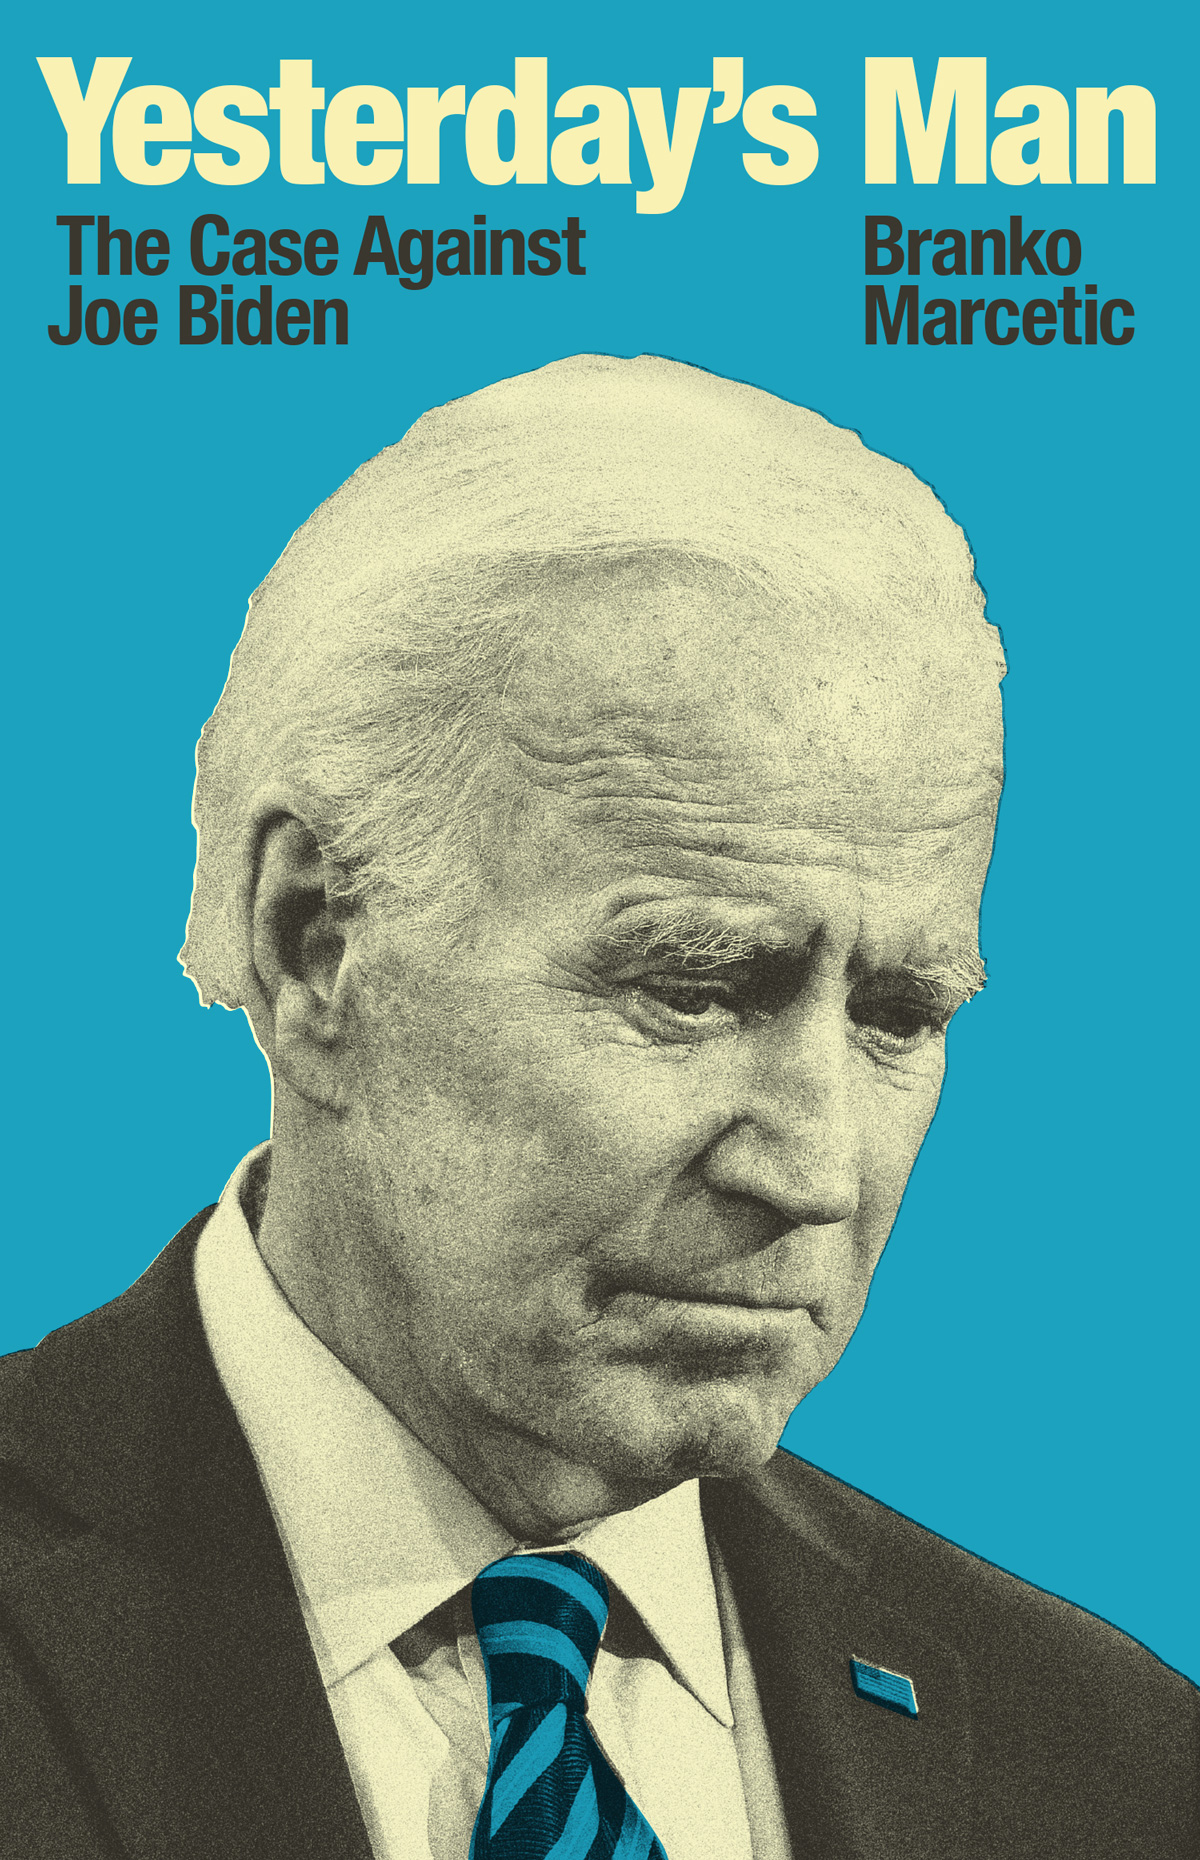 Yesterday's Man: The Case Against Joe Biden